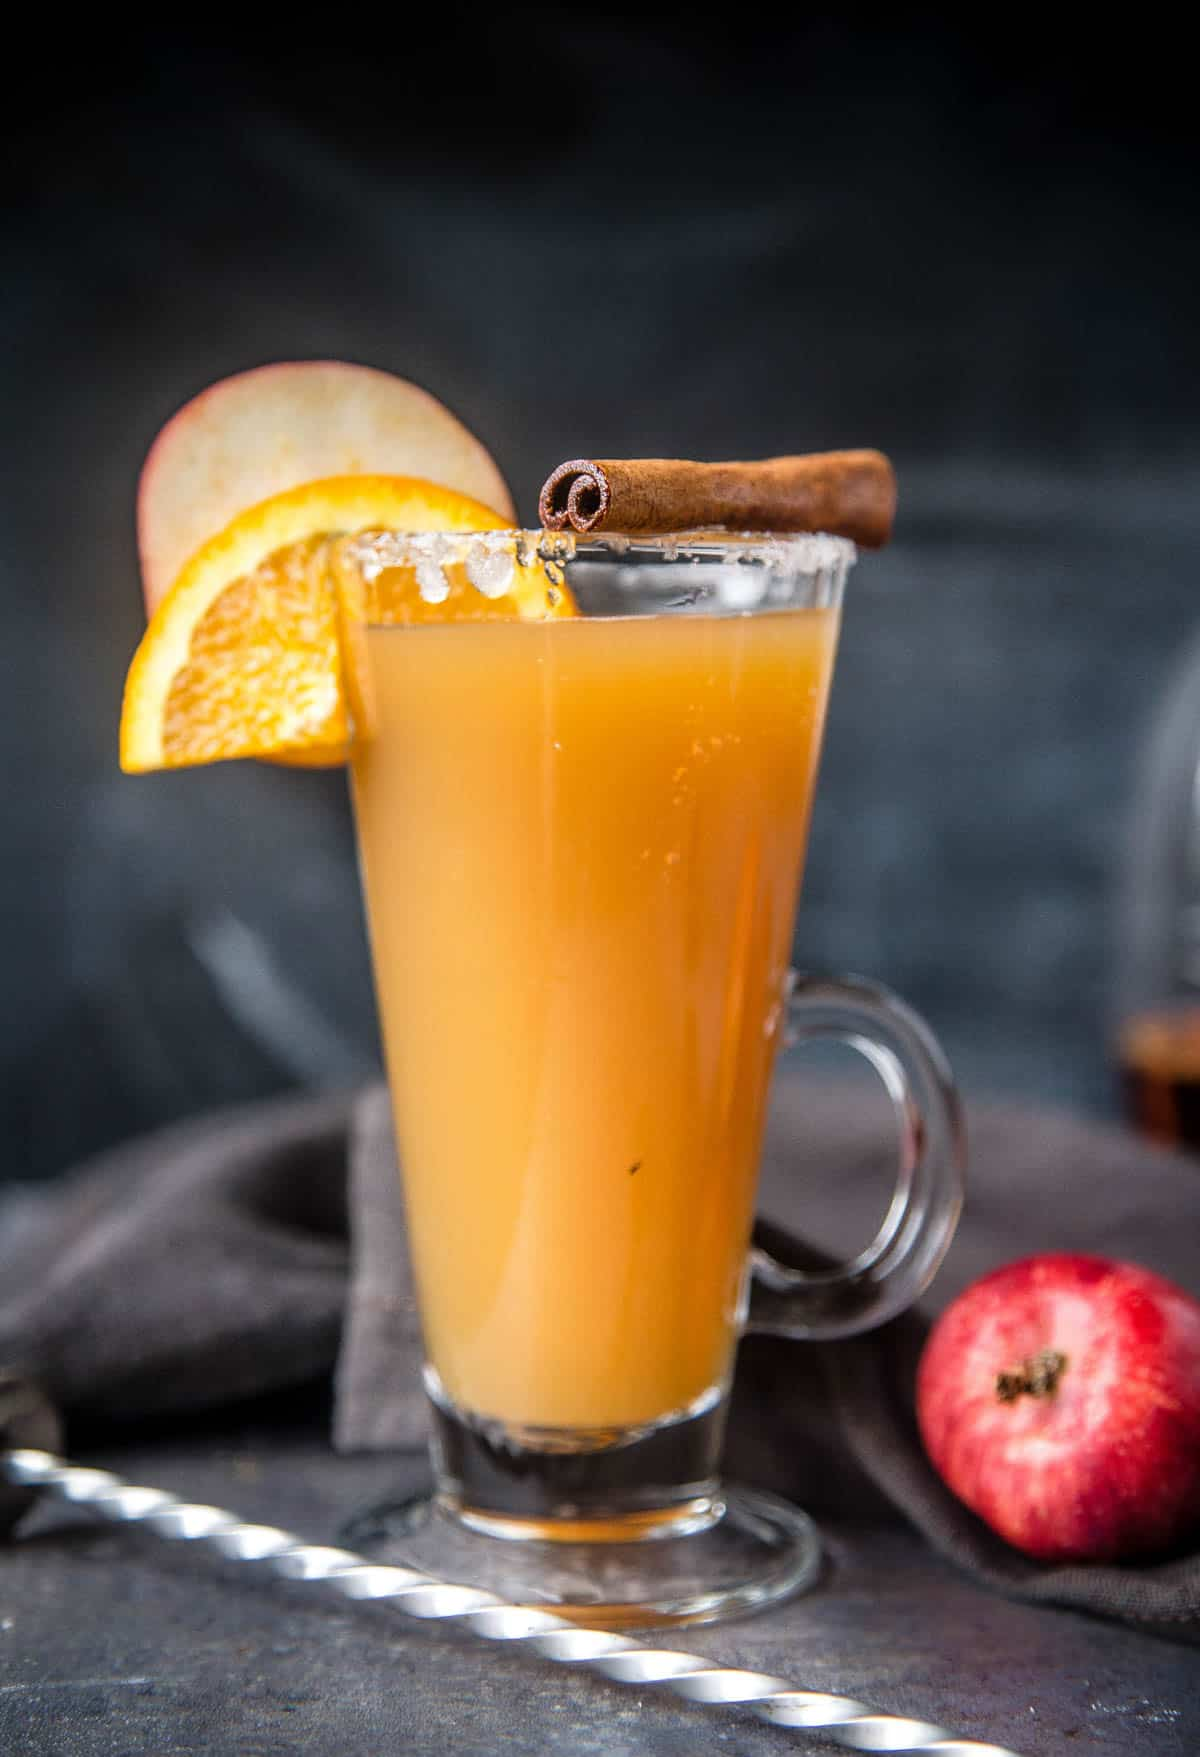 A Bourbon Spiked Hot Apple Cider cocktail in a glass